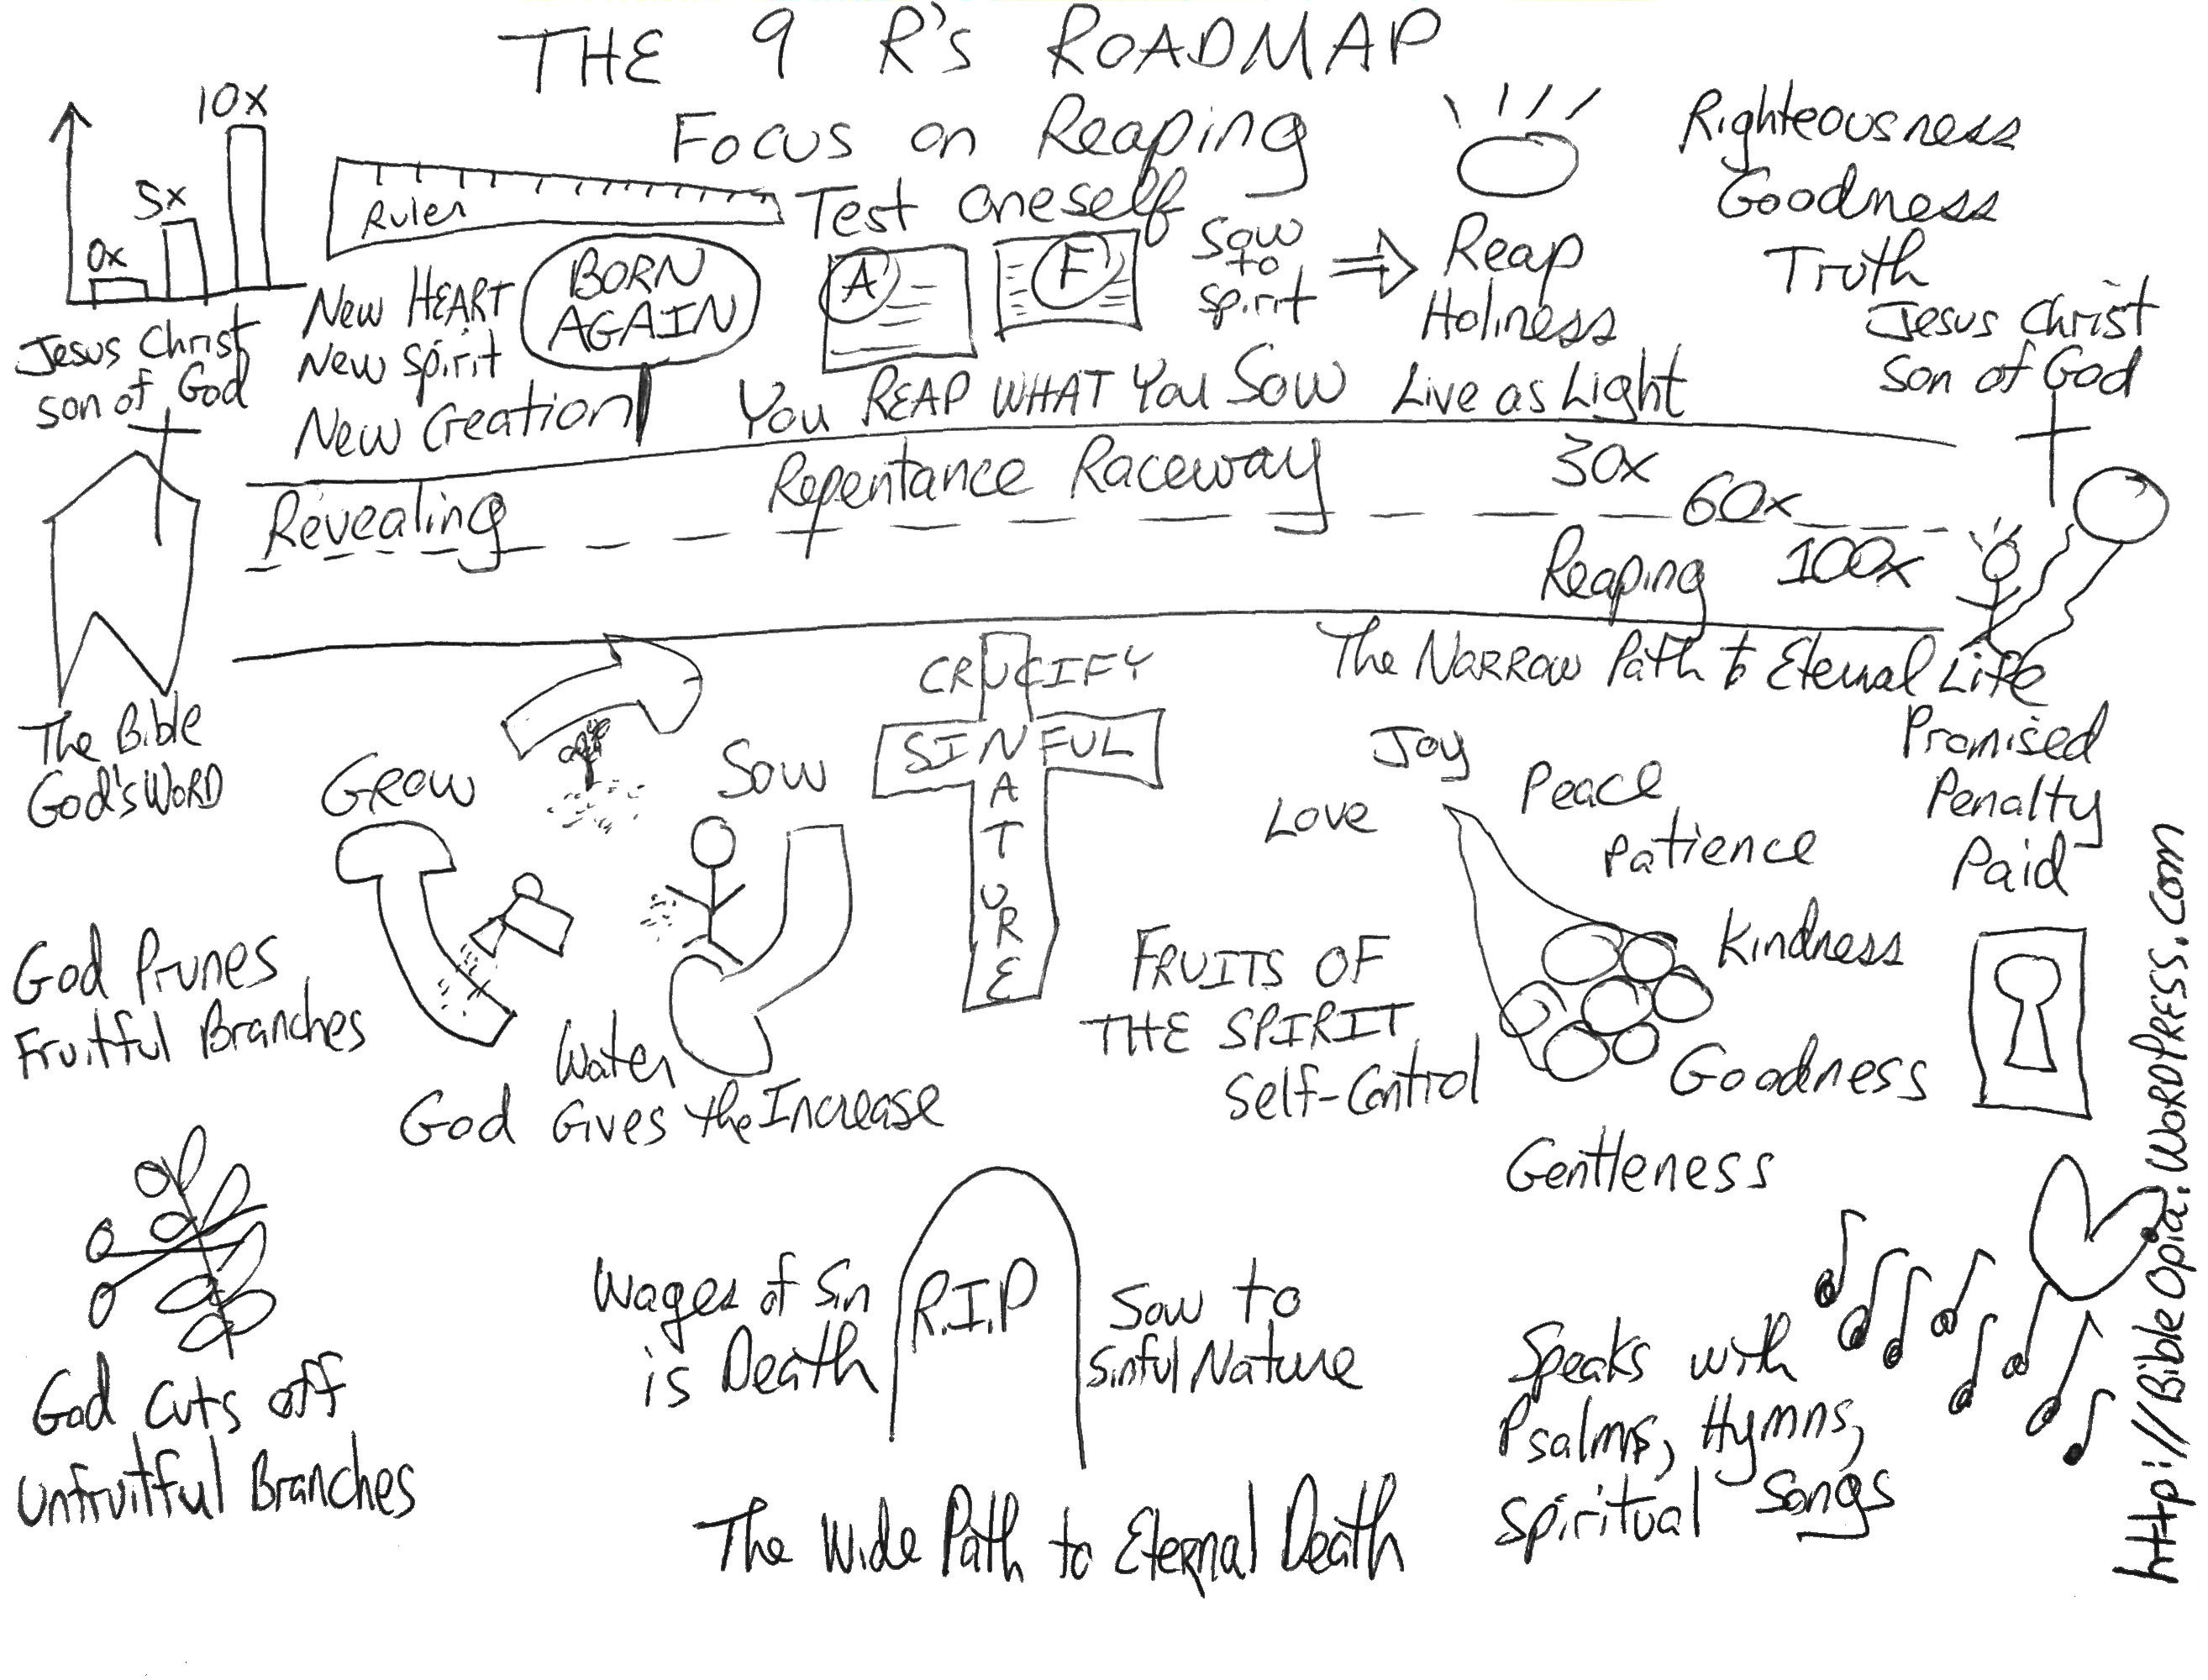 Drawn road road map R's Reaping BibleOpia parable Blog